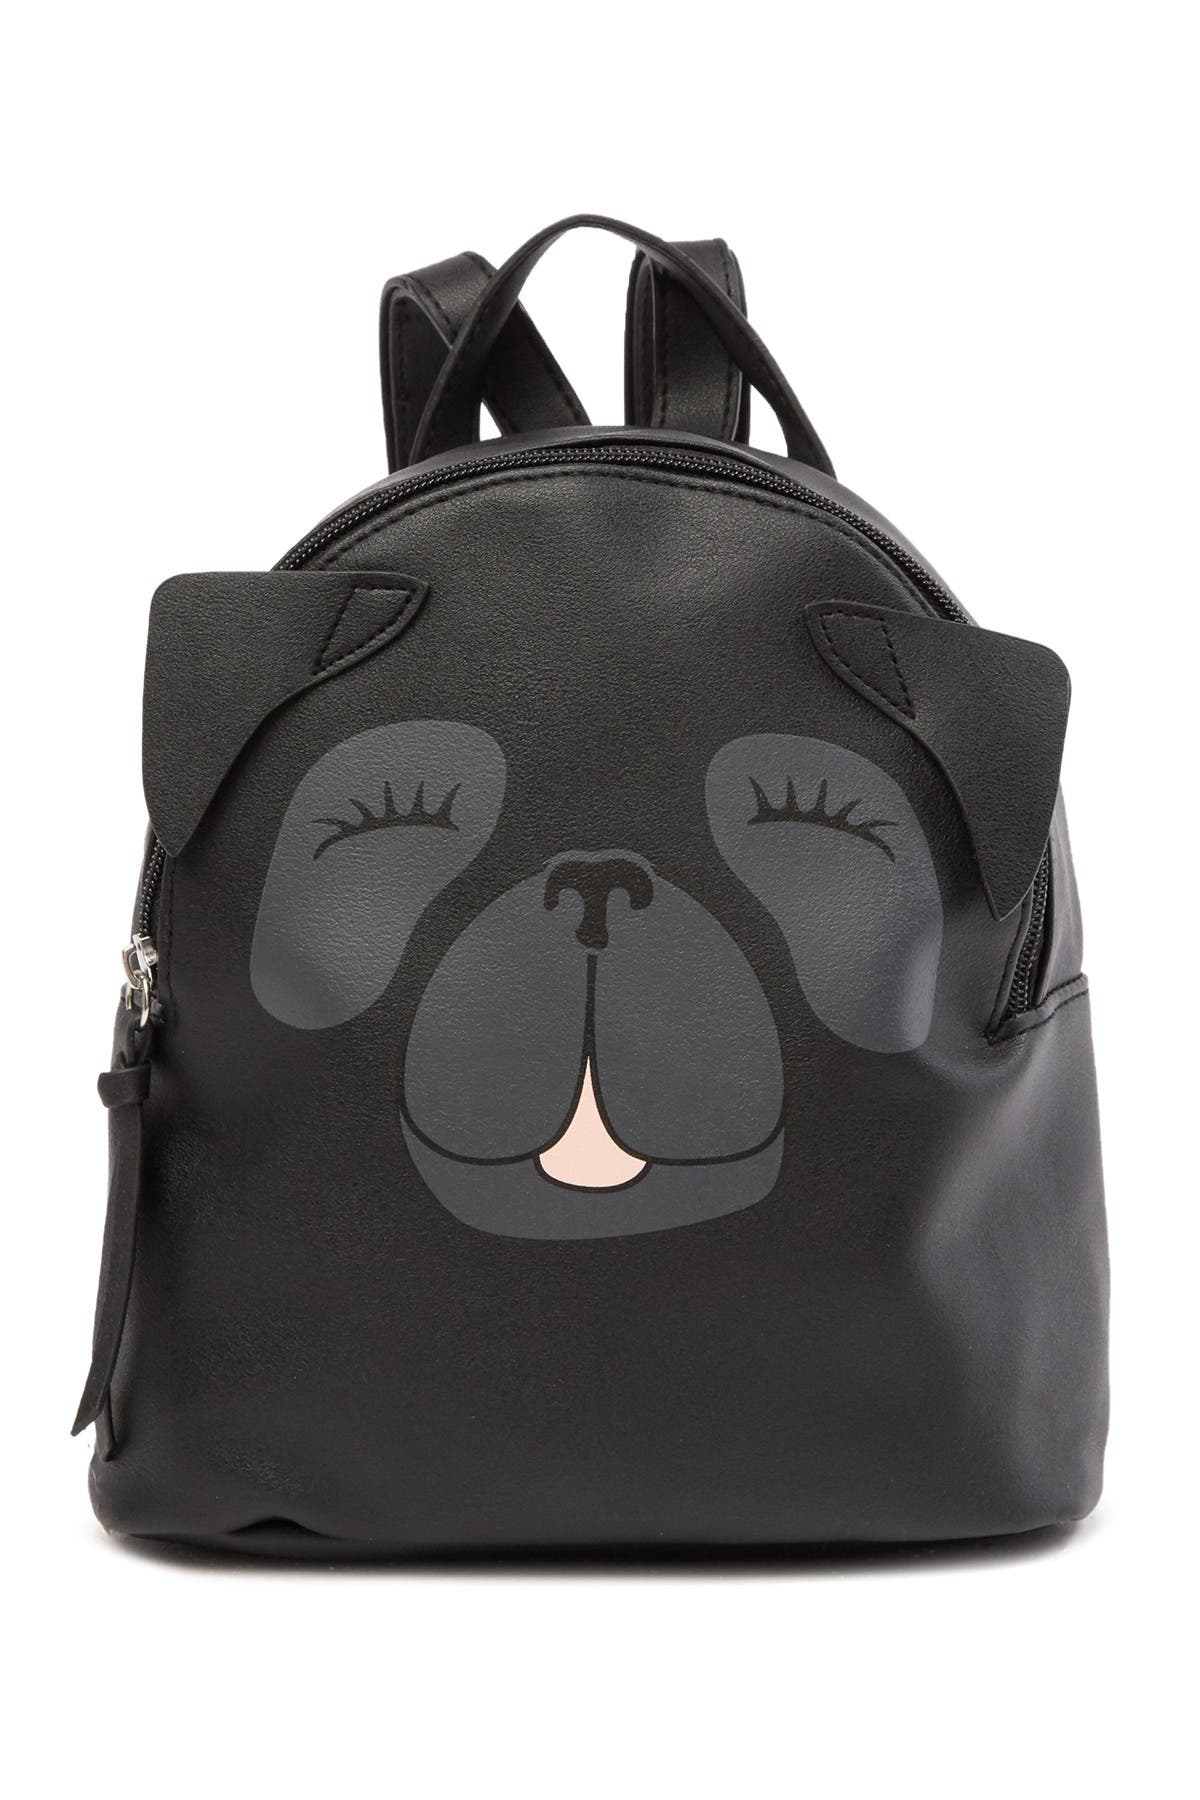 Image of T-Shirt & Jeans Puppy Mini Backpack